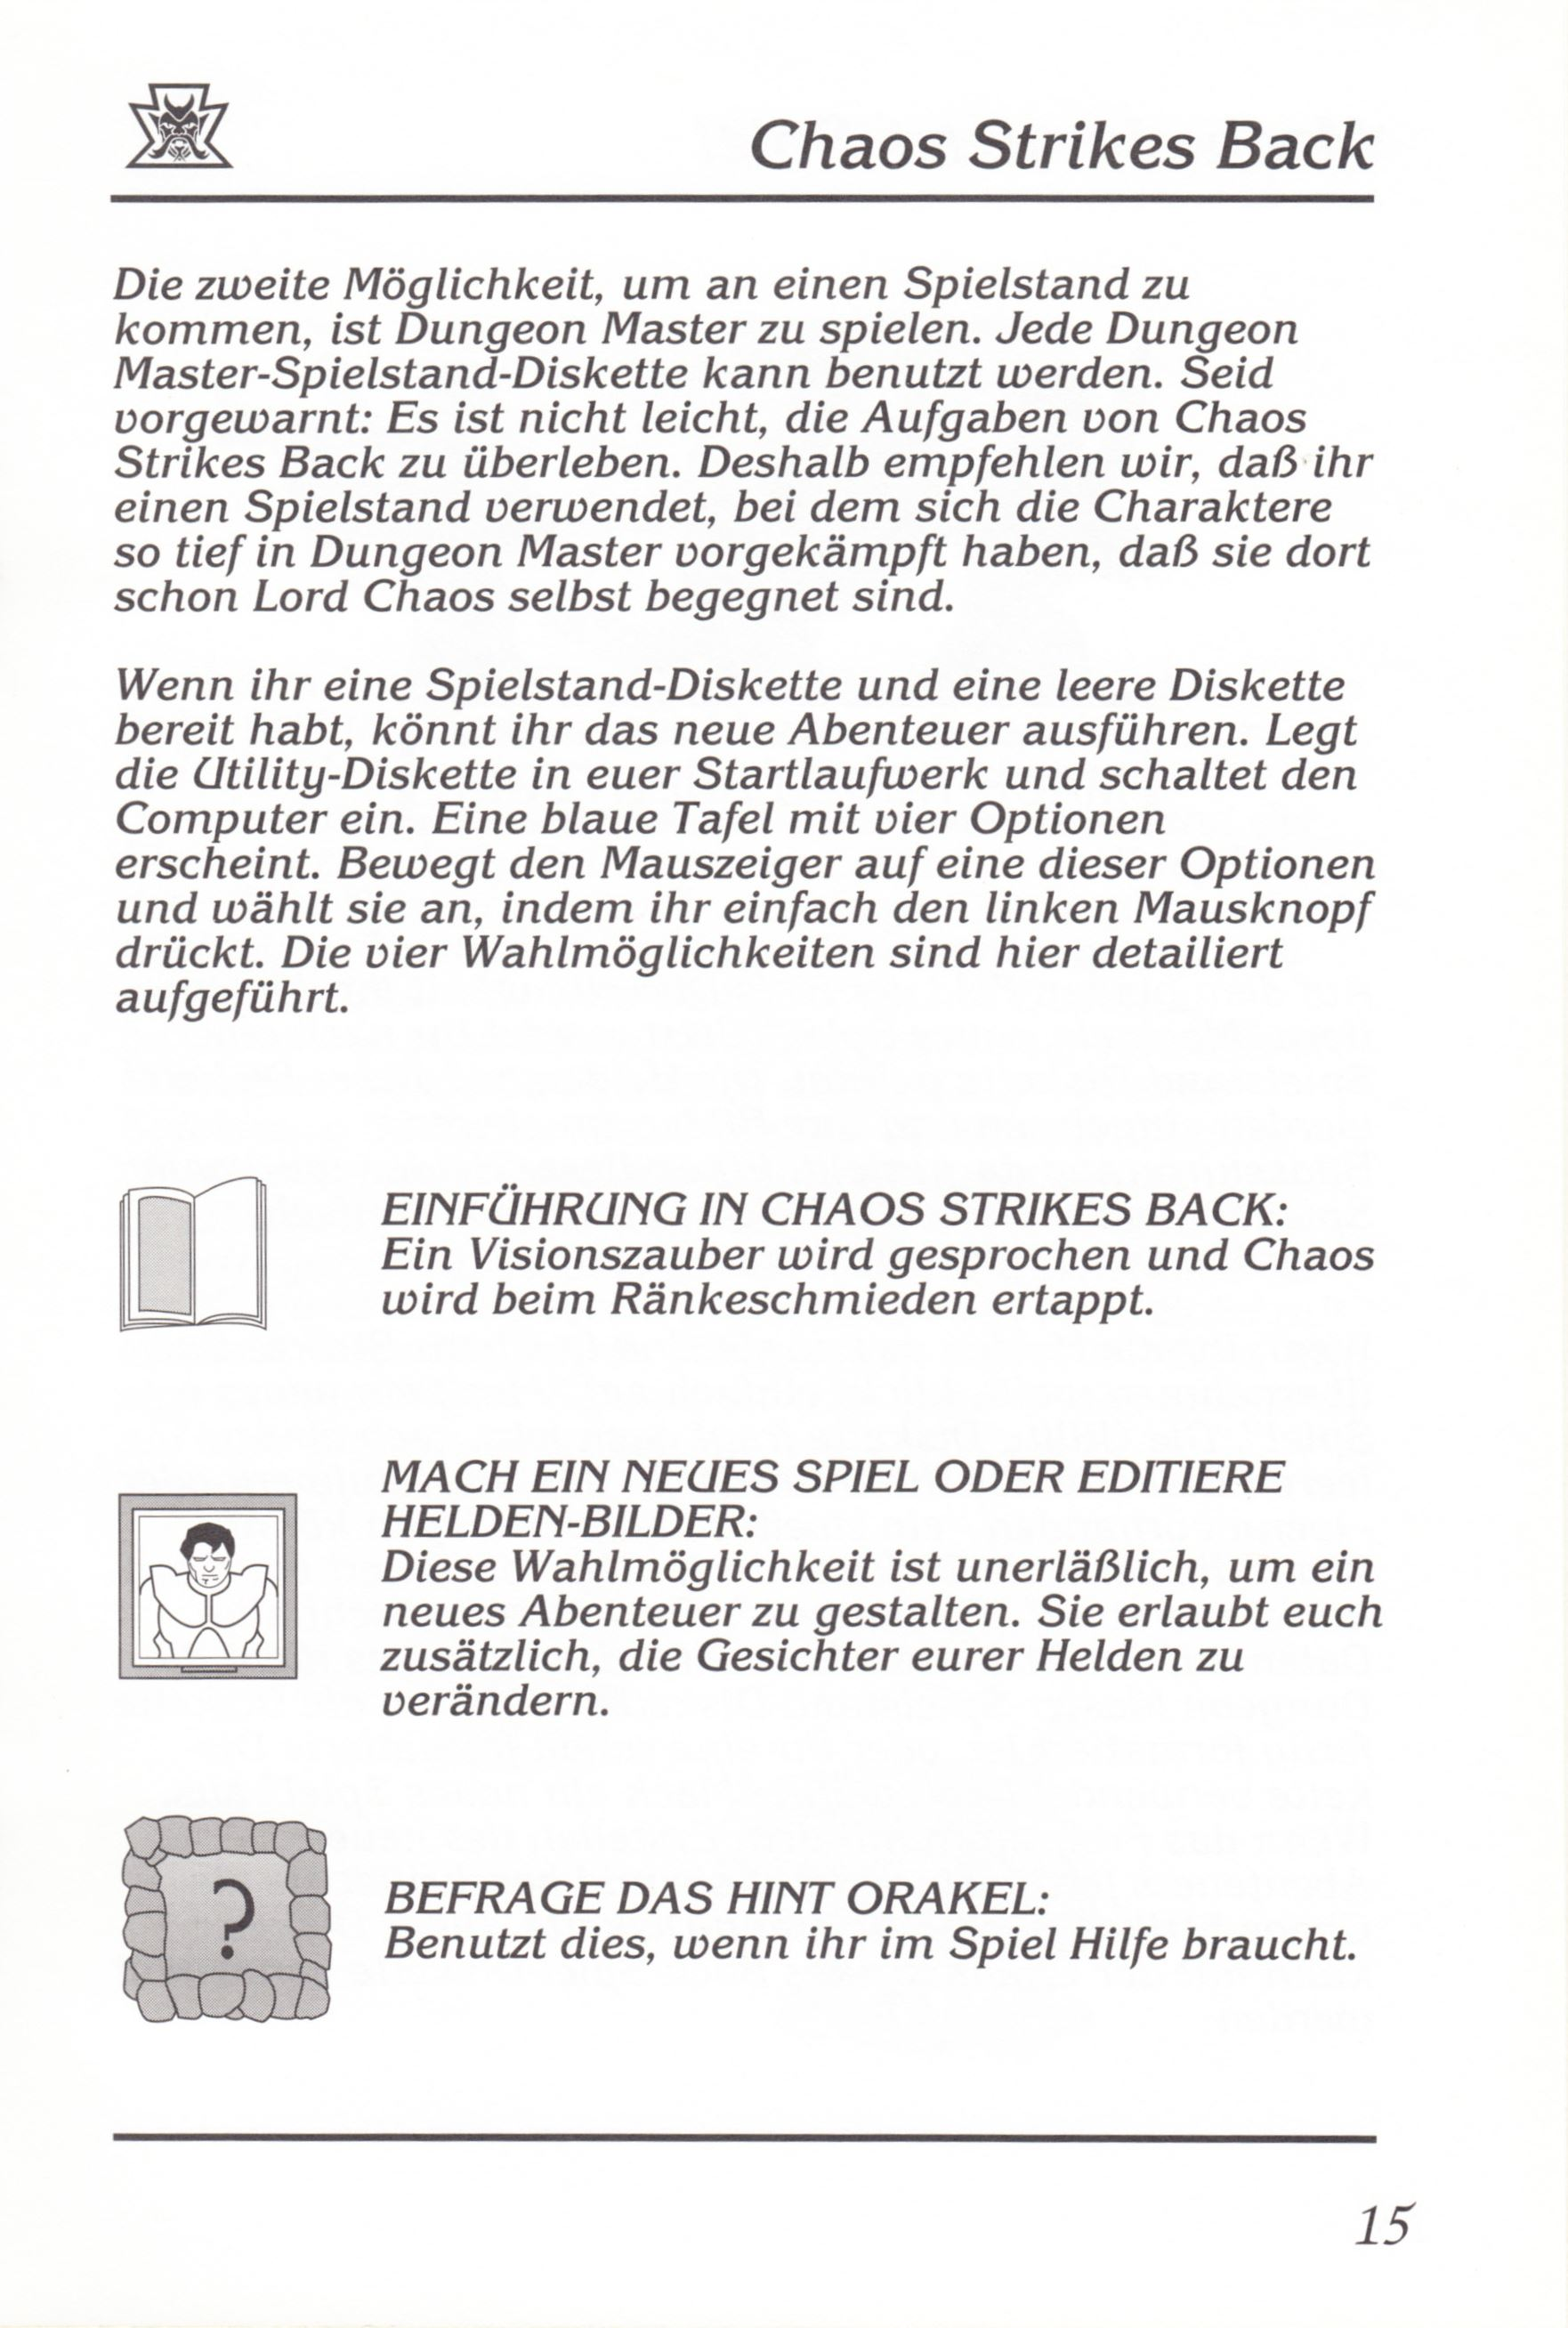 Game - Chaos Strikes Back - DE - Amiga - Manual - Page 017 - Scan